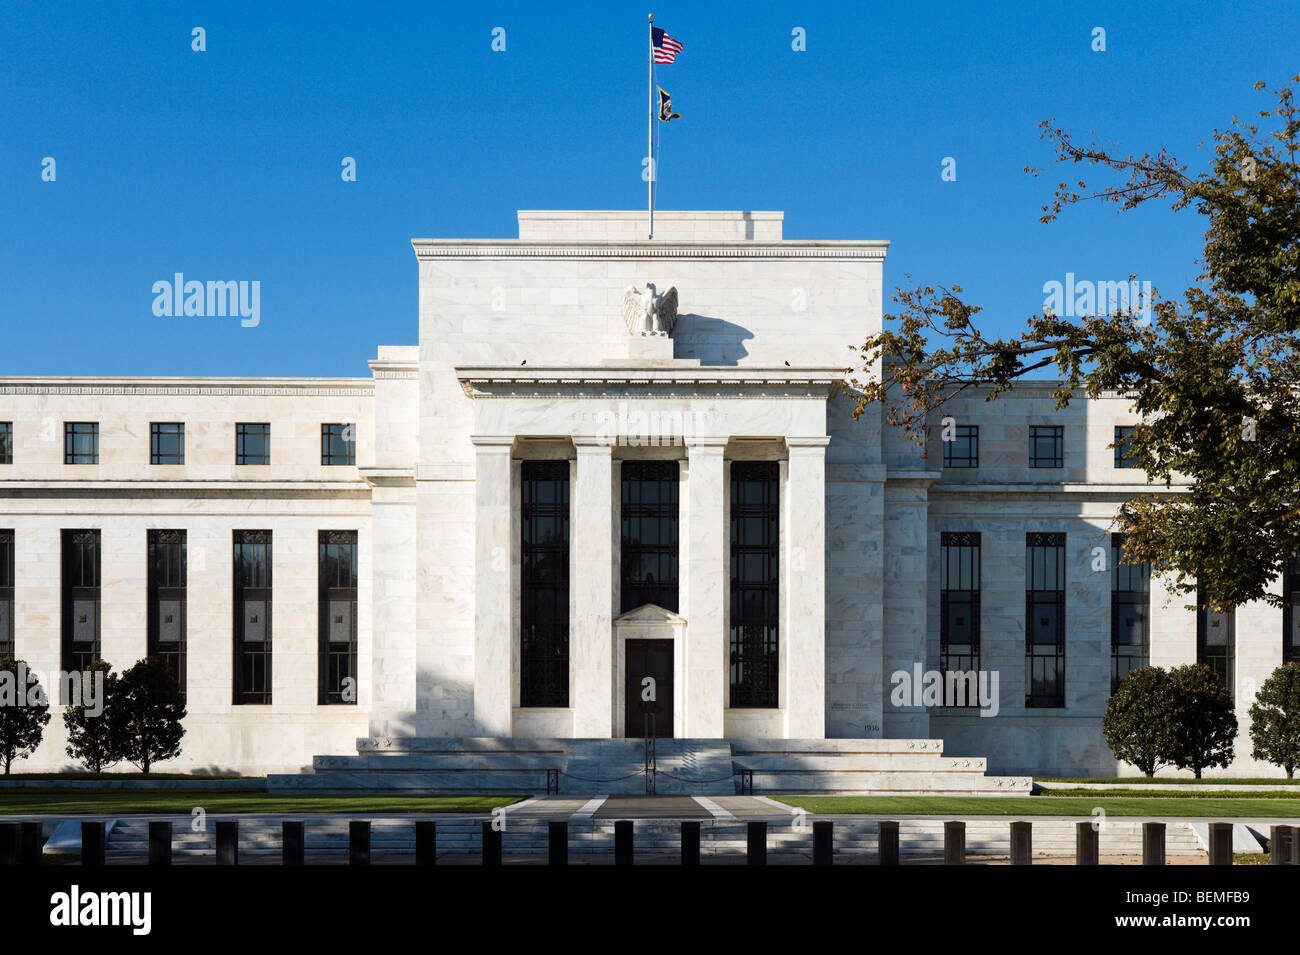 The Federal Reserve Building, Constitution Avenue, Washington DC, USA - Stock Image